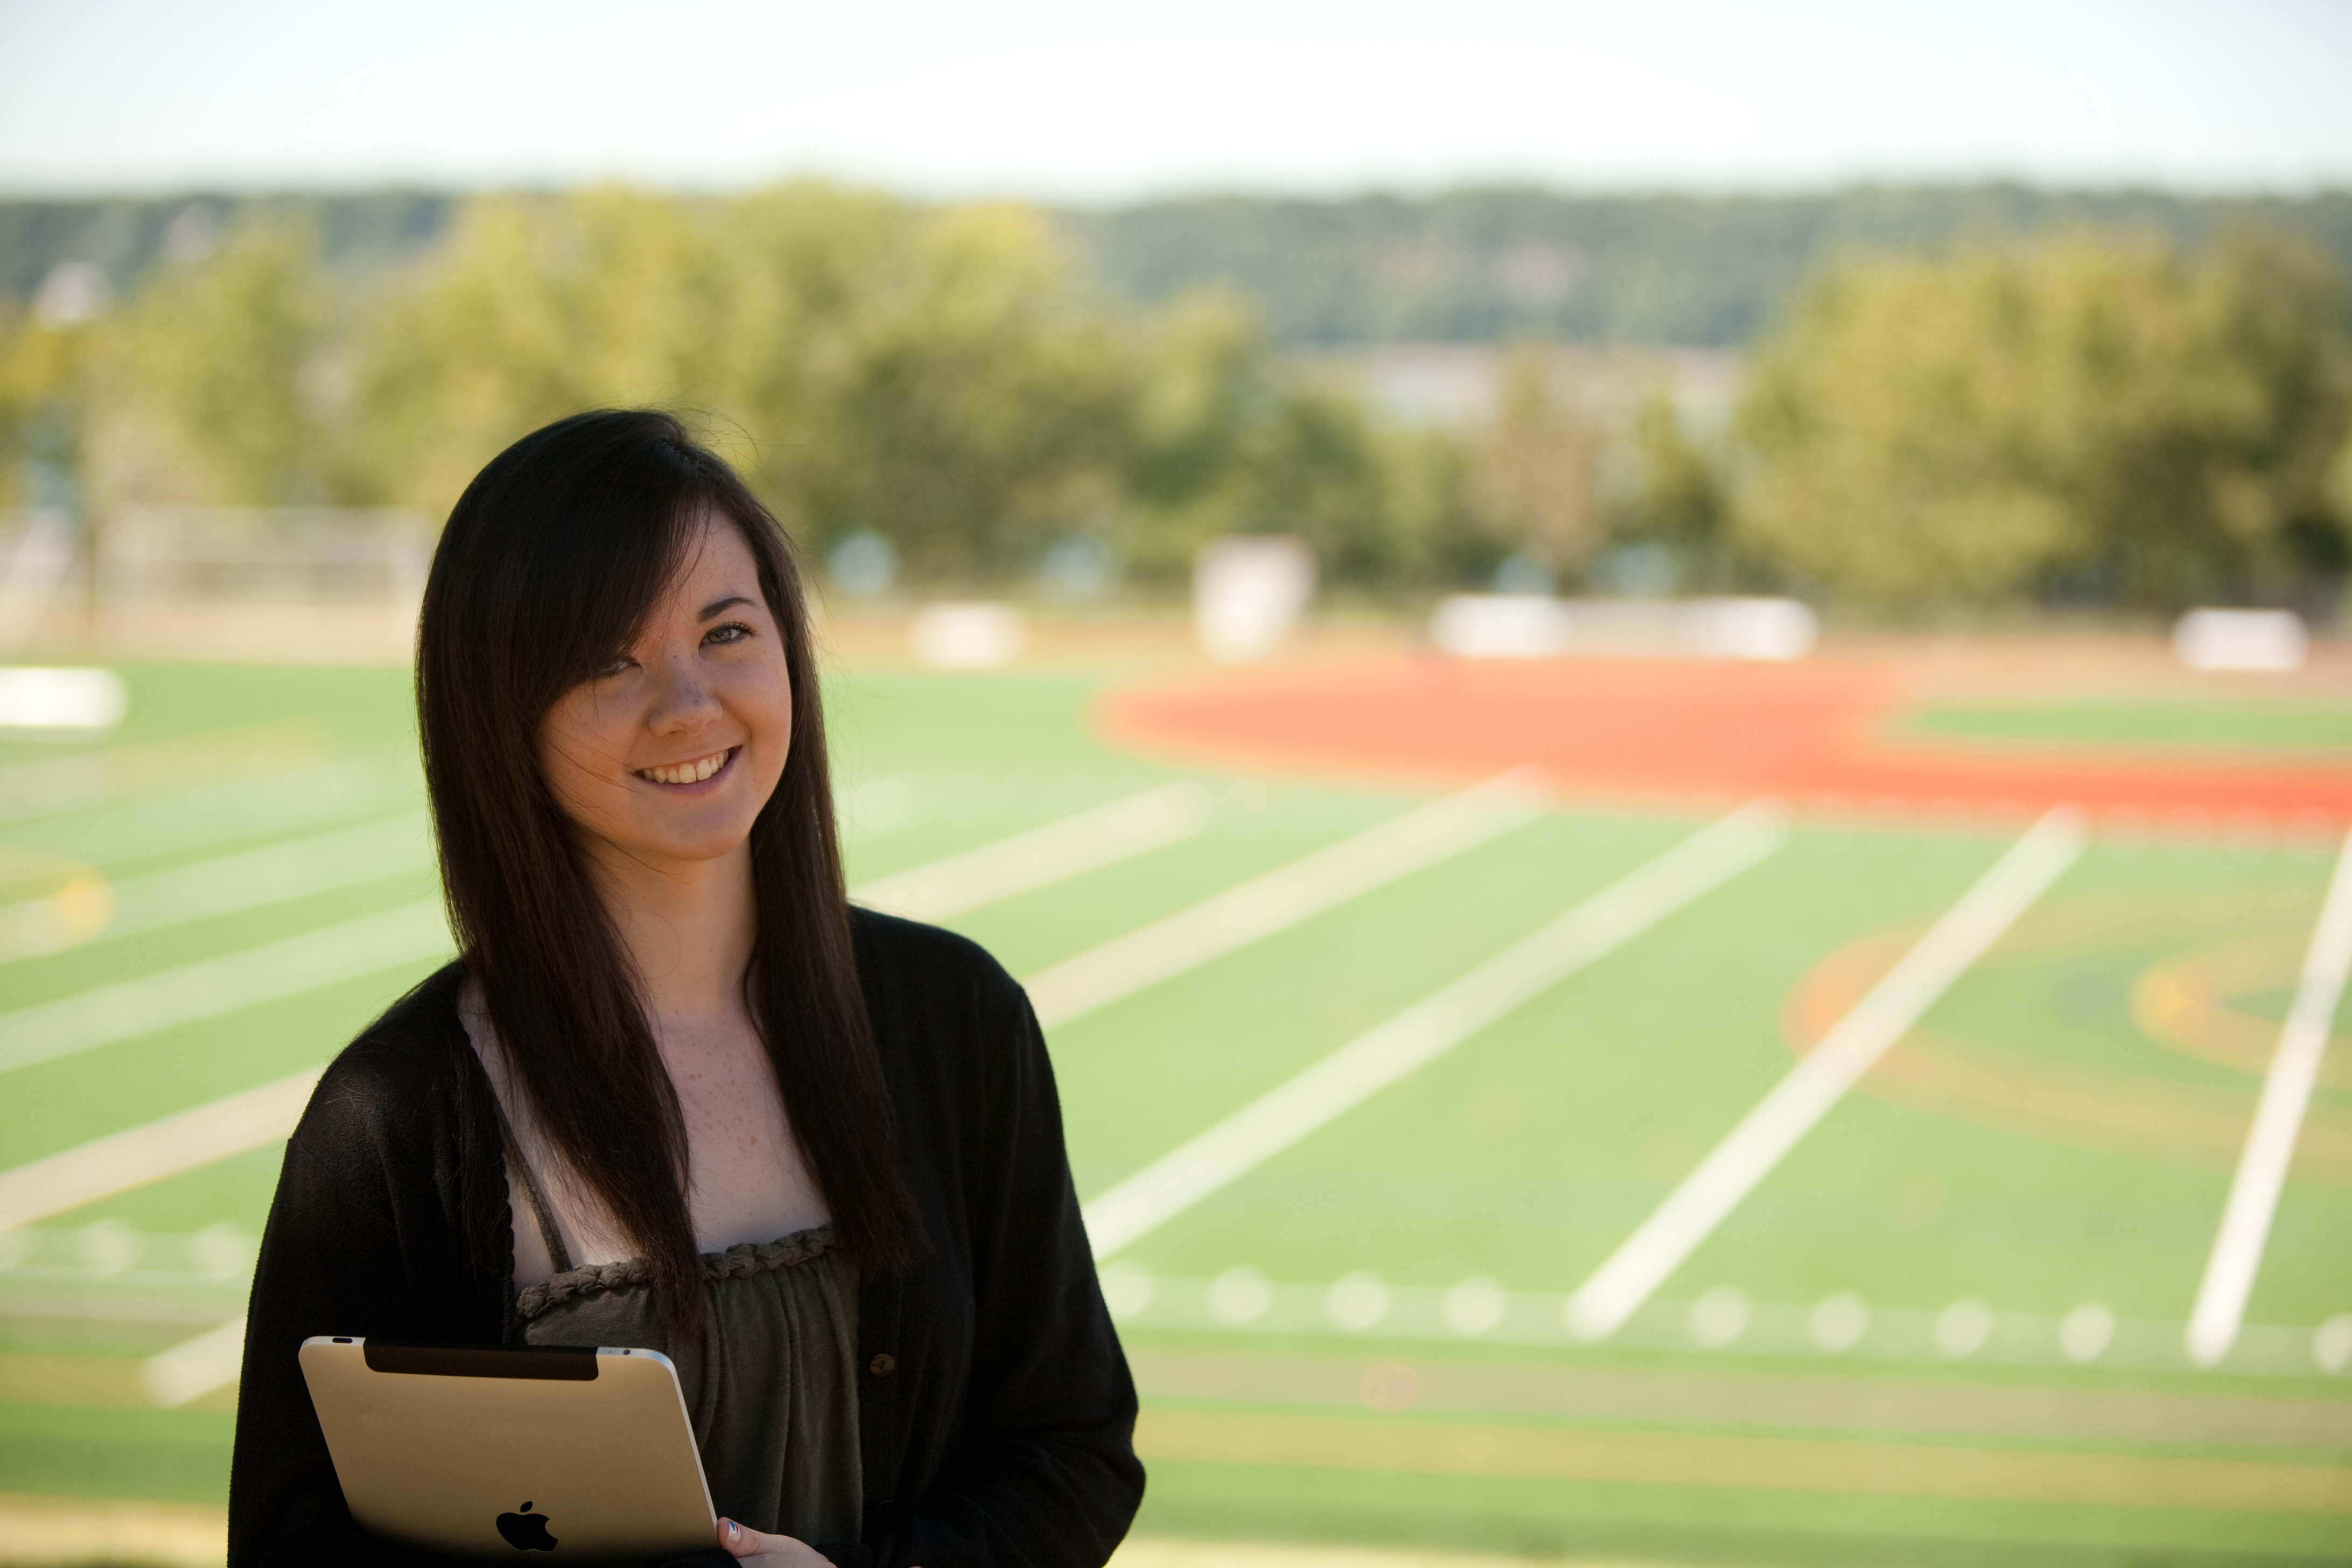 Mercy Student with Field in the Background